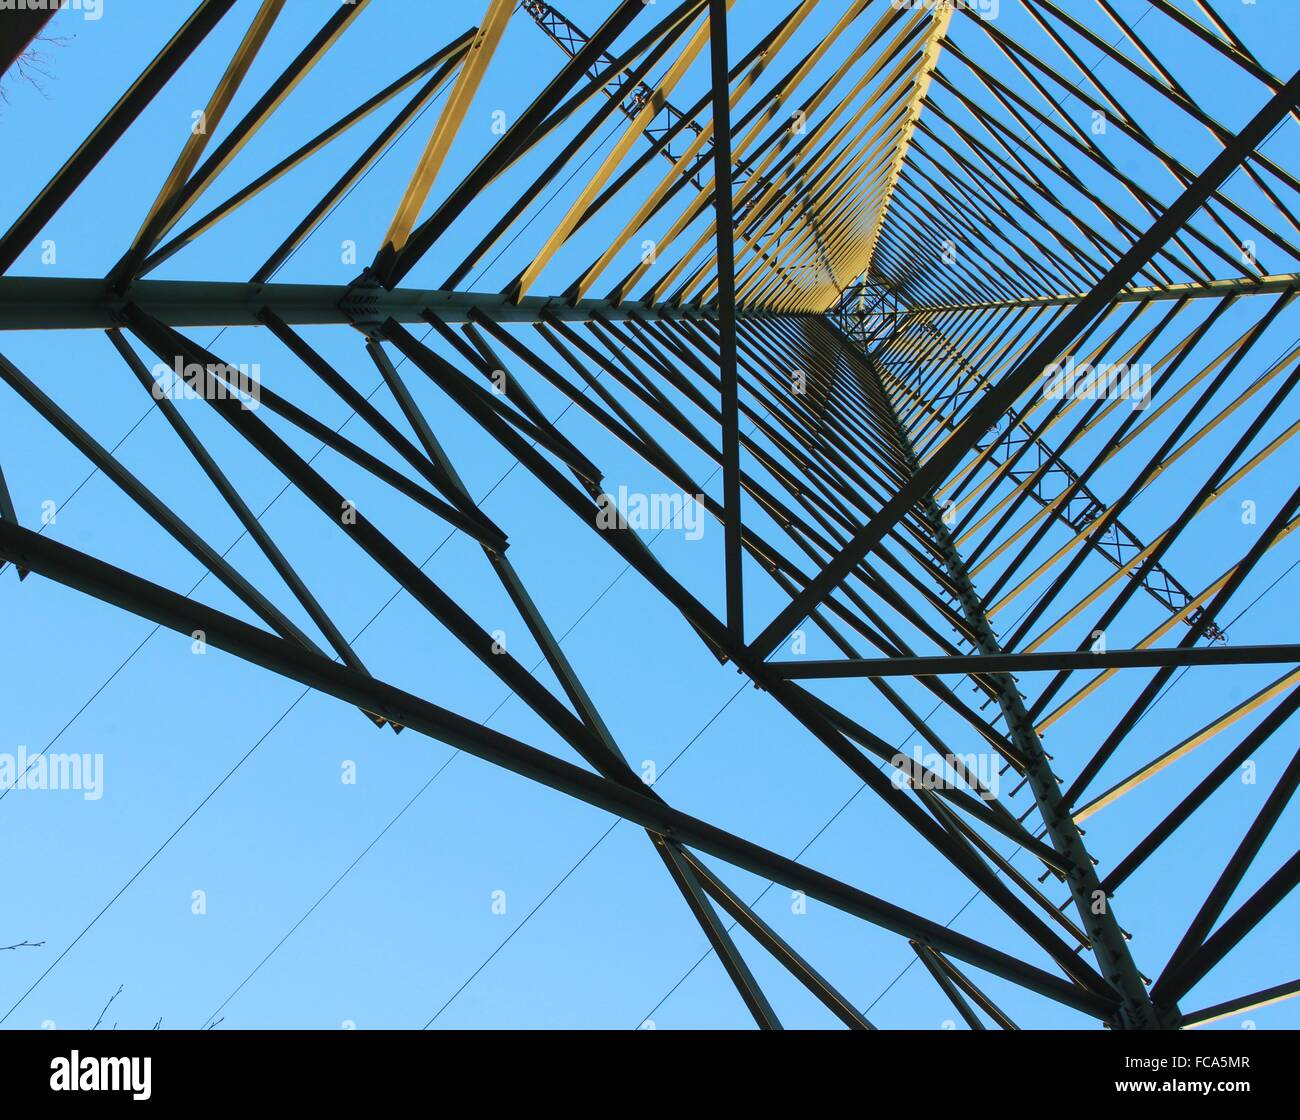 Electrical tower from below - Stock Image